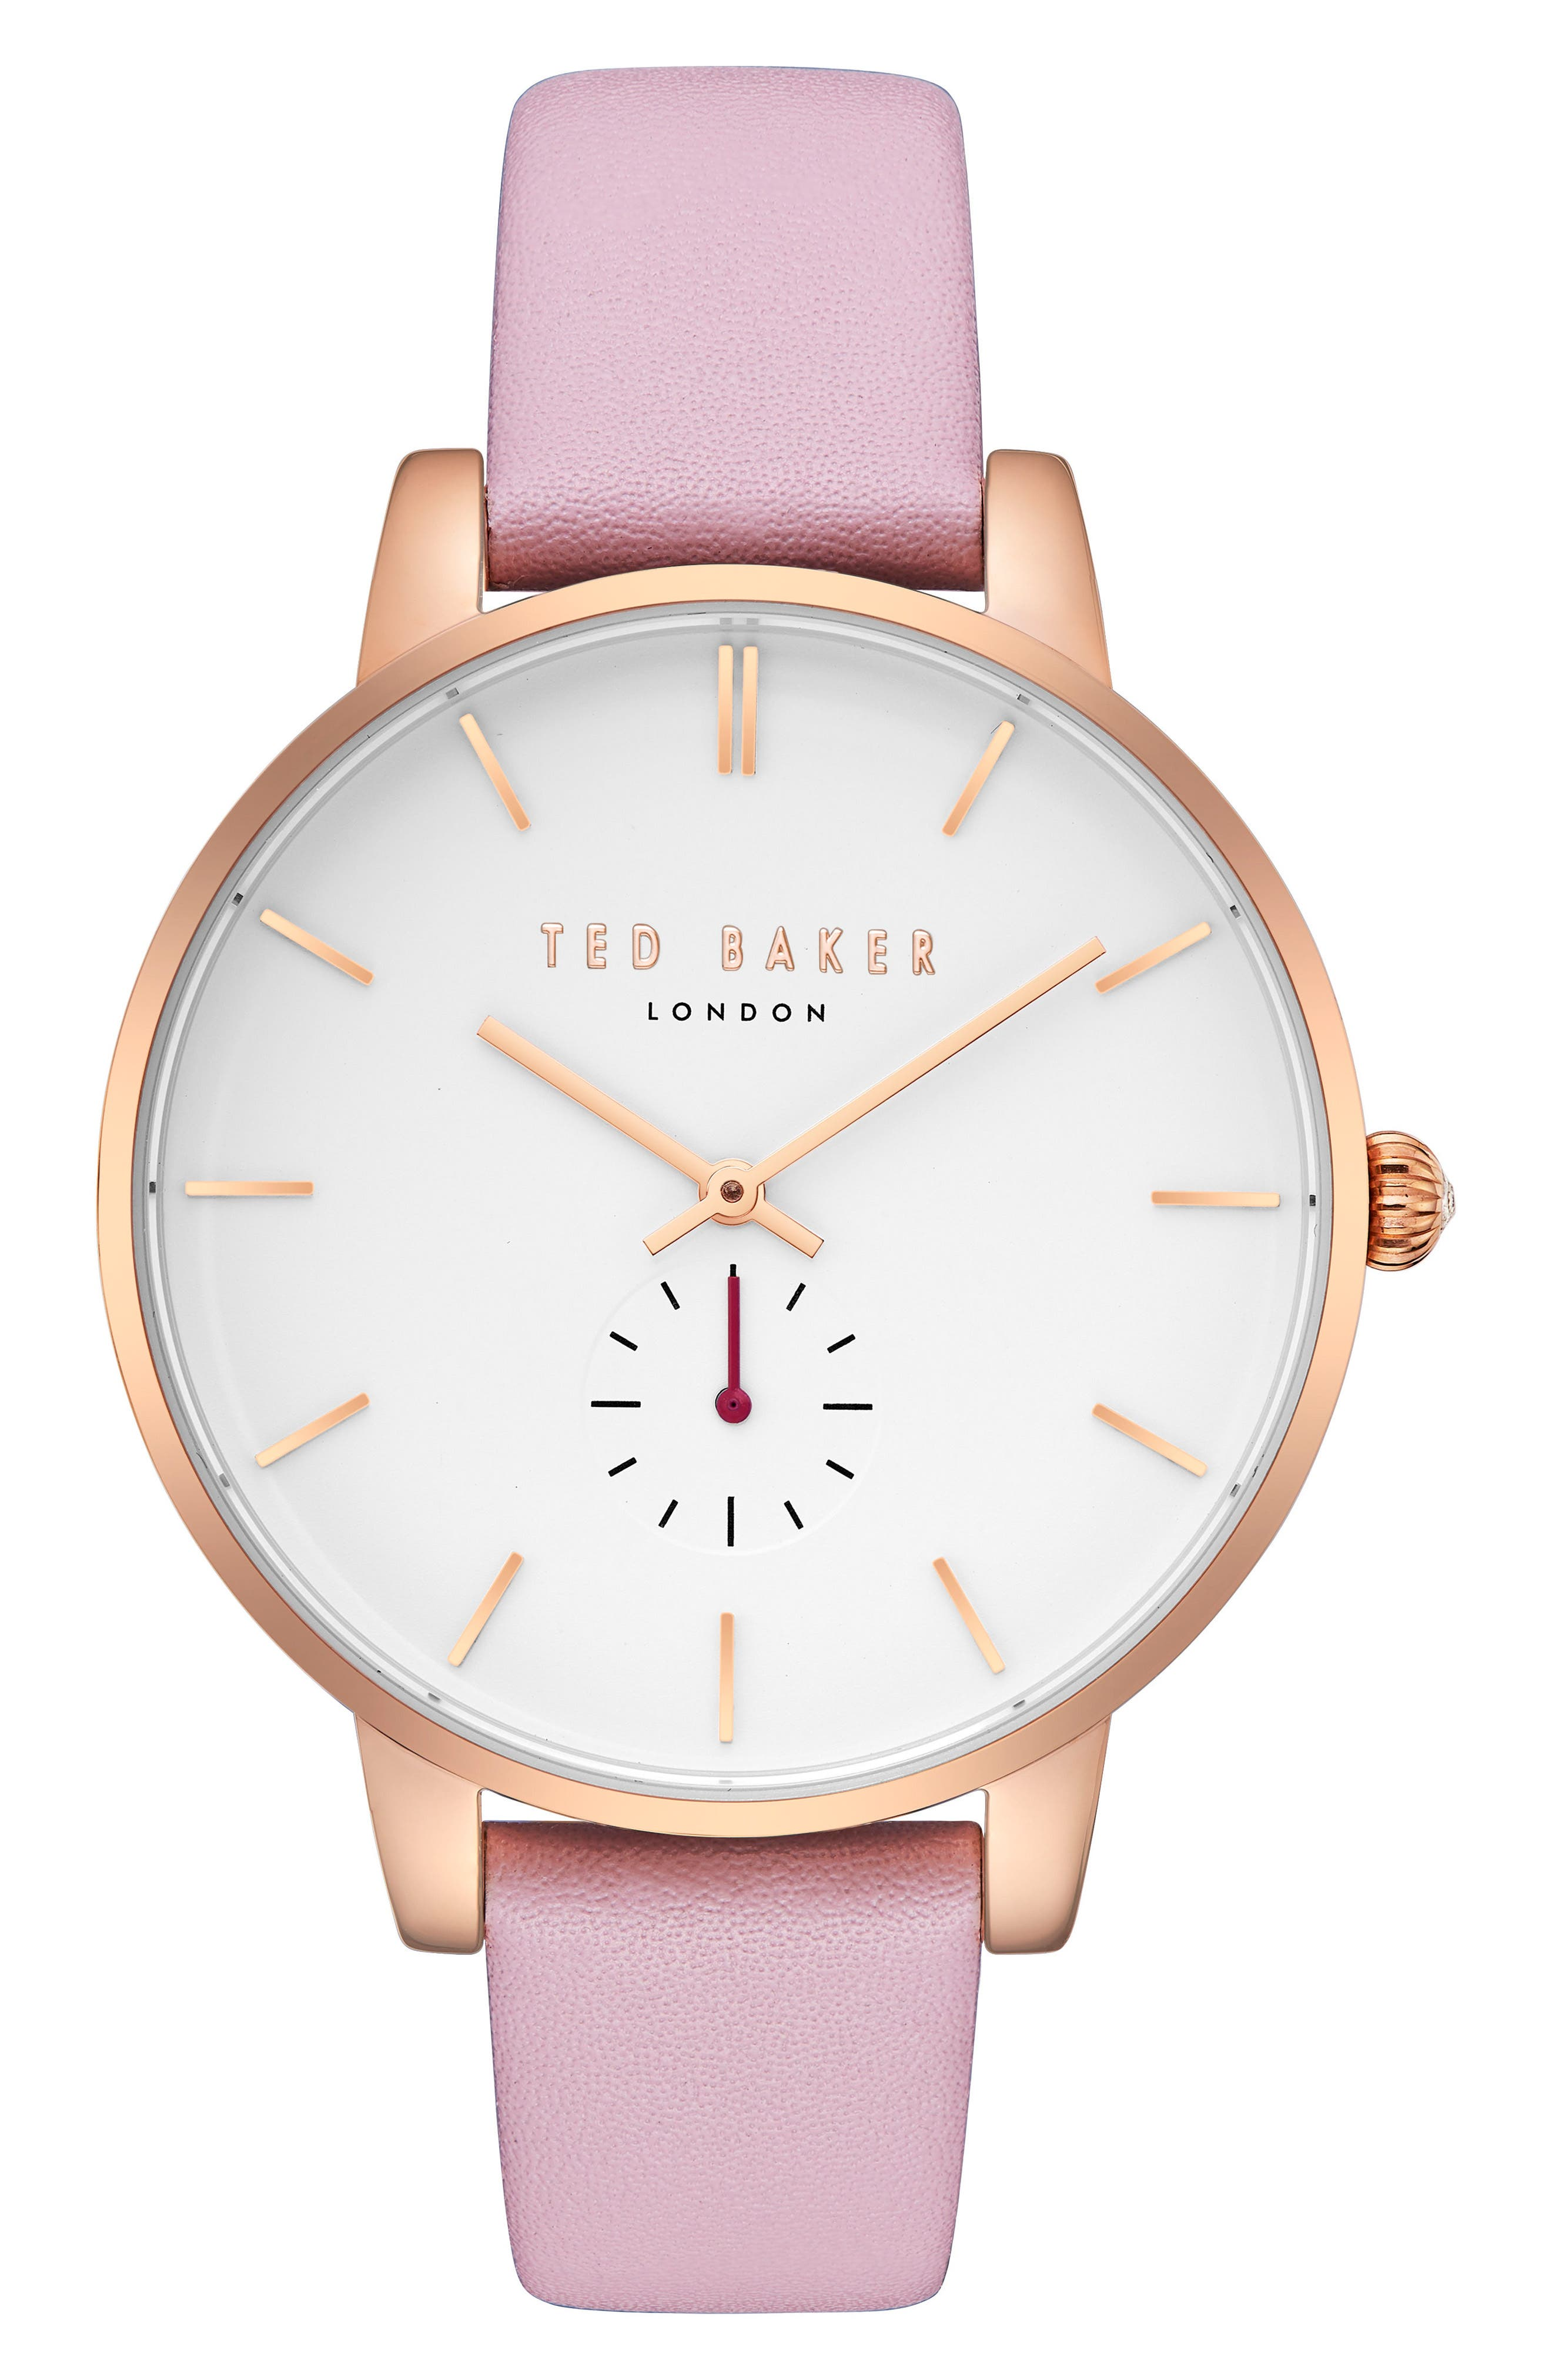 Olivia Leather Strap Watch,                             Main thumbnail 1, color,                             PINK/ WHITE/ ROSE GOLD